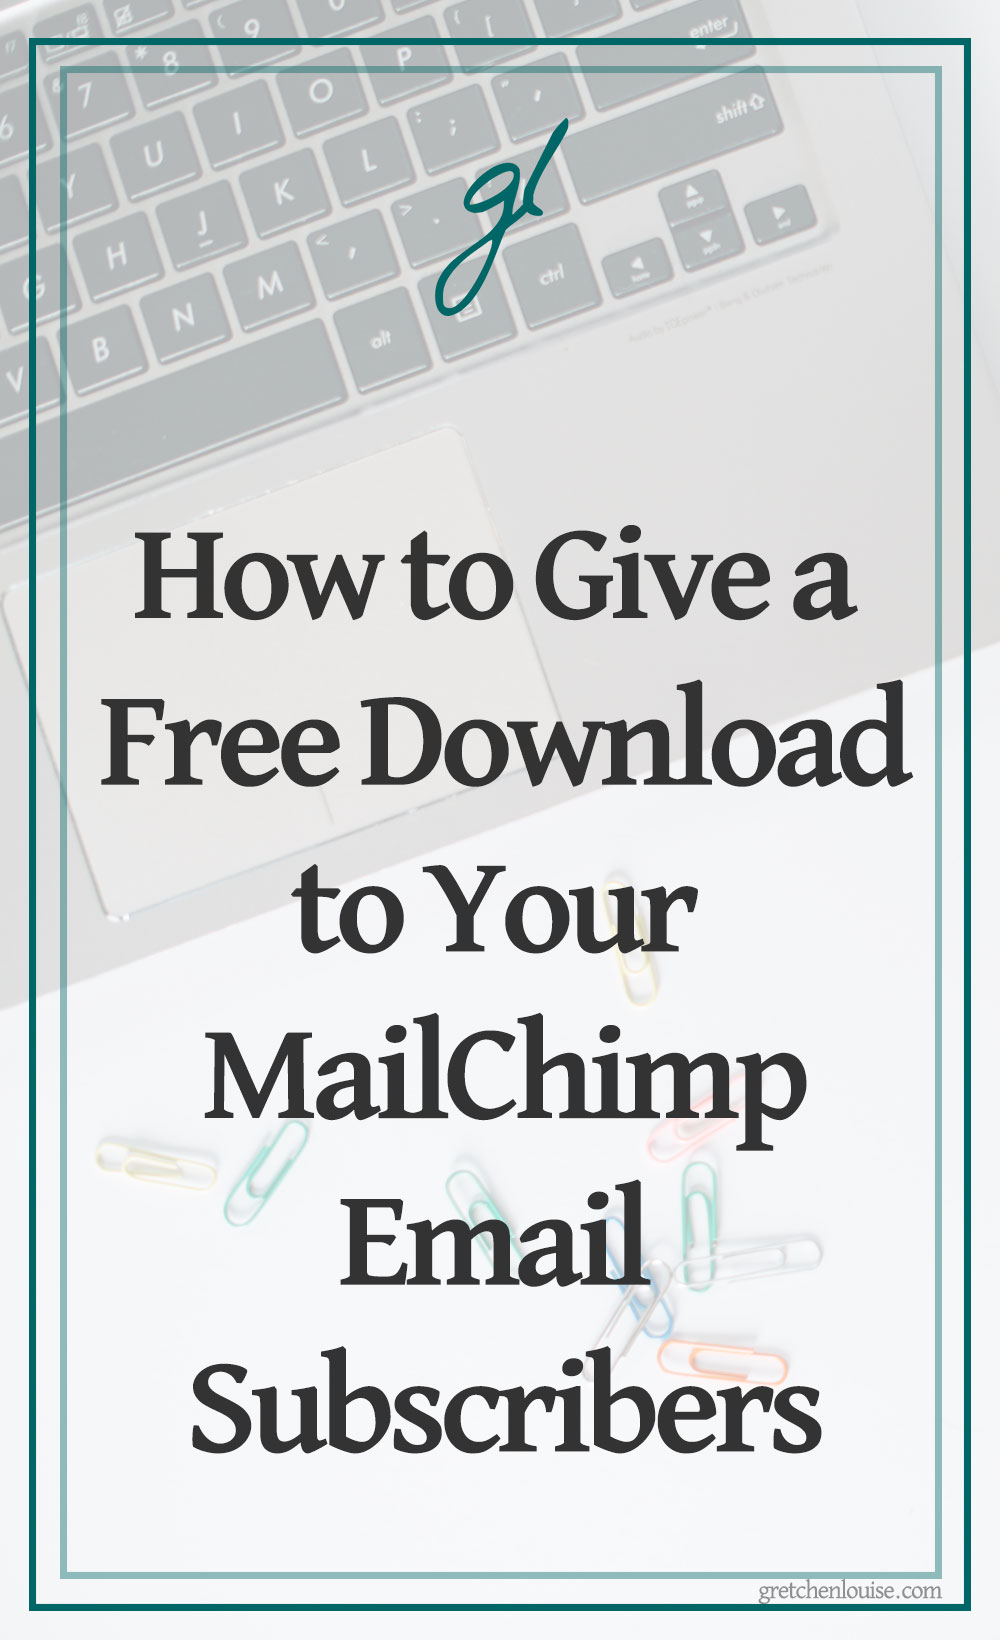 How to Give a Free Download to Your MailChimp Email Subscribers via @GretLouise